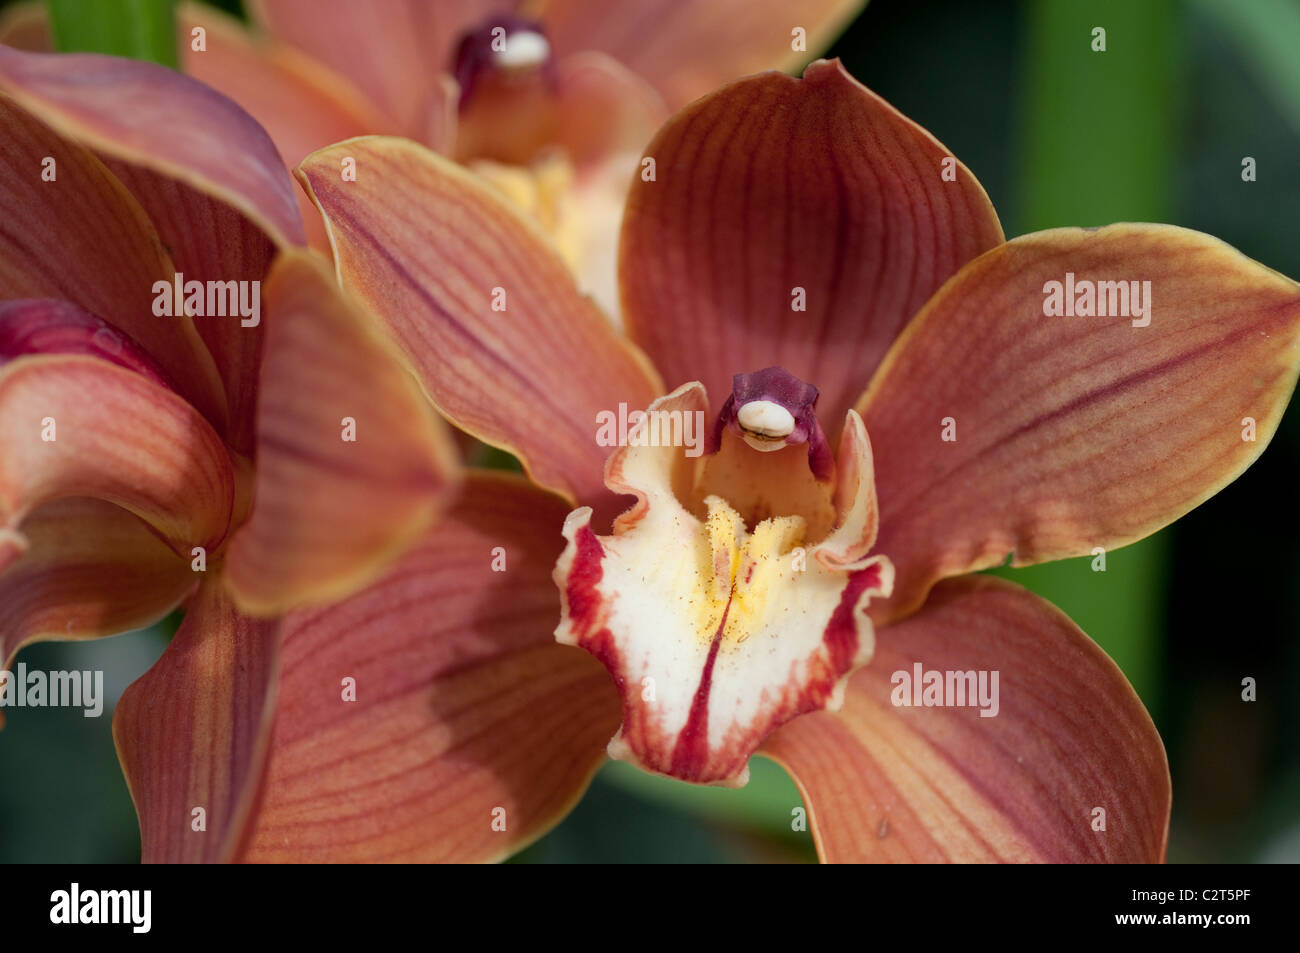 "Cymbidium Torcia Sandridge gx ""Ruth' Immagini Stock"